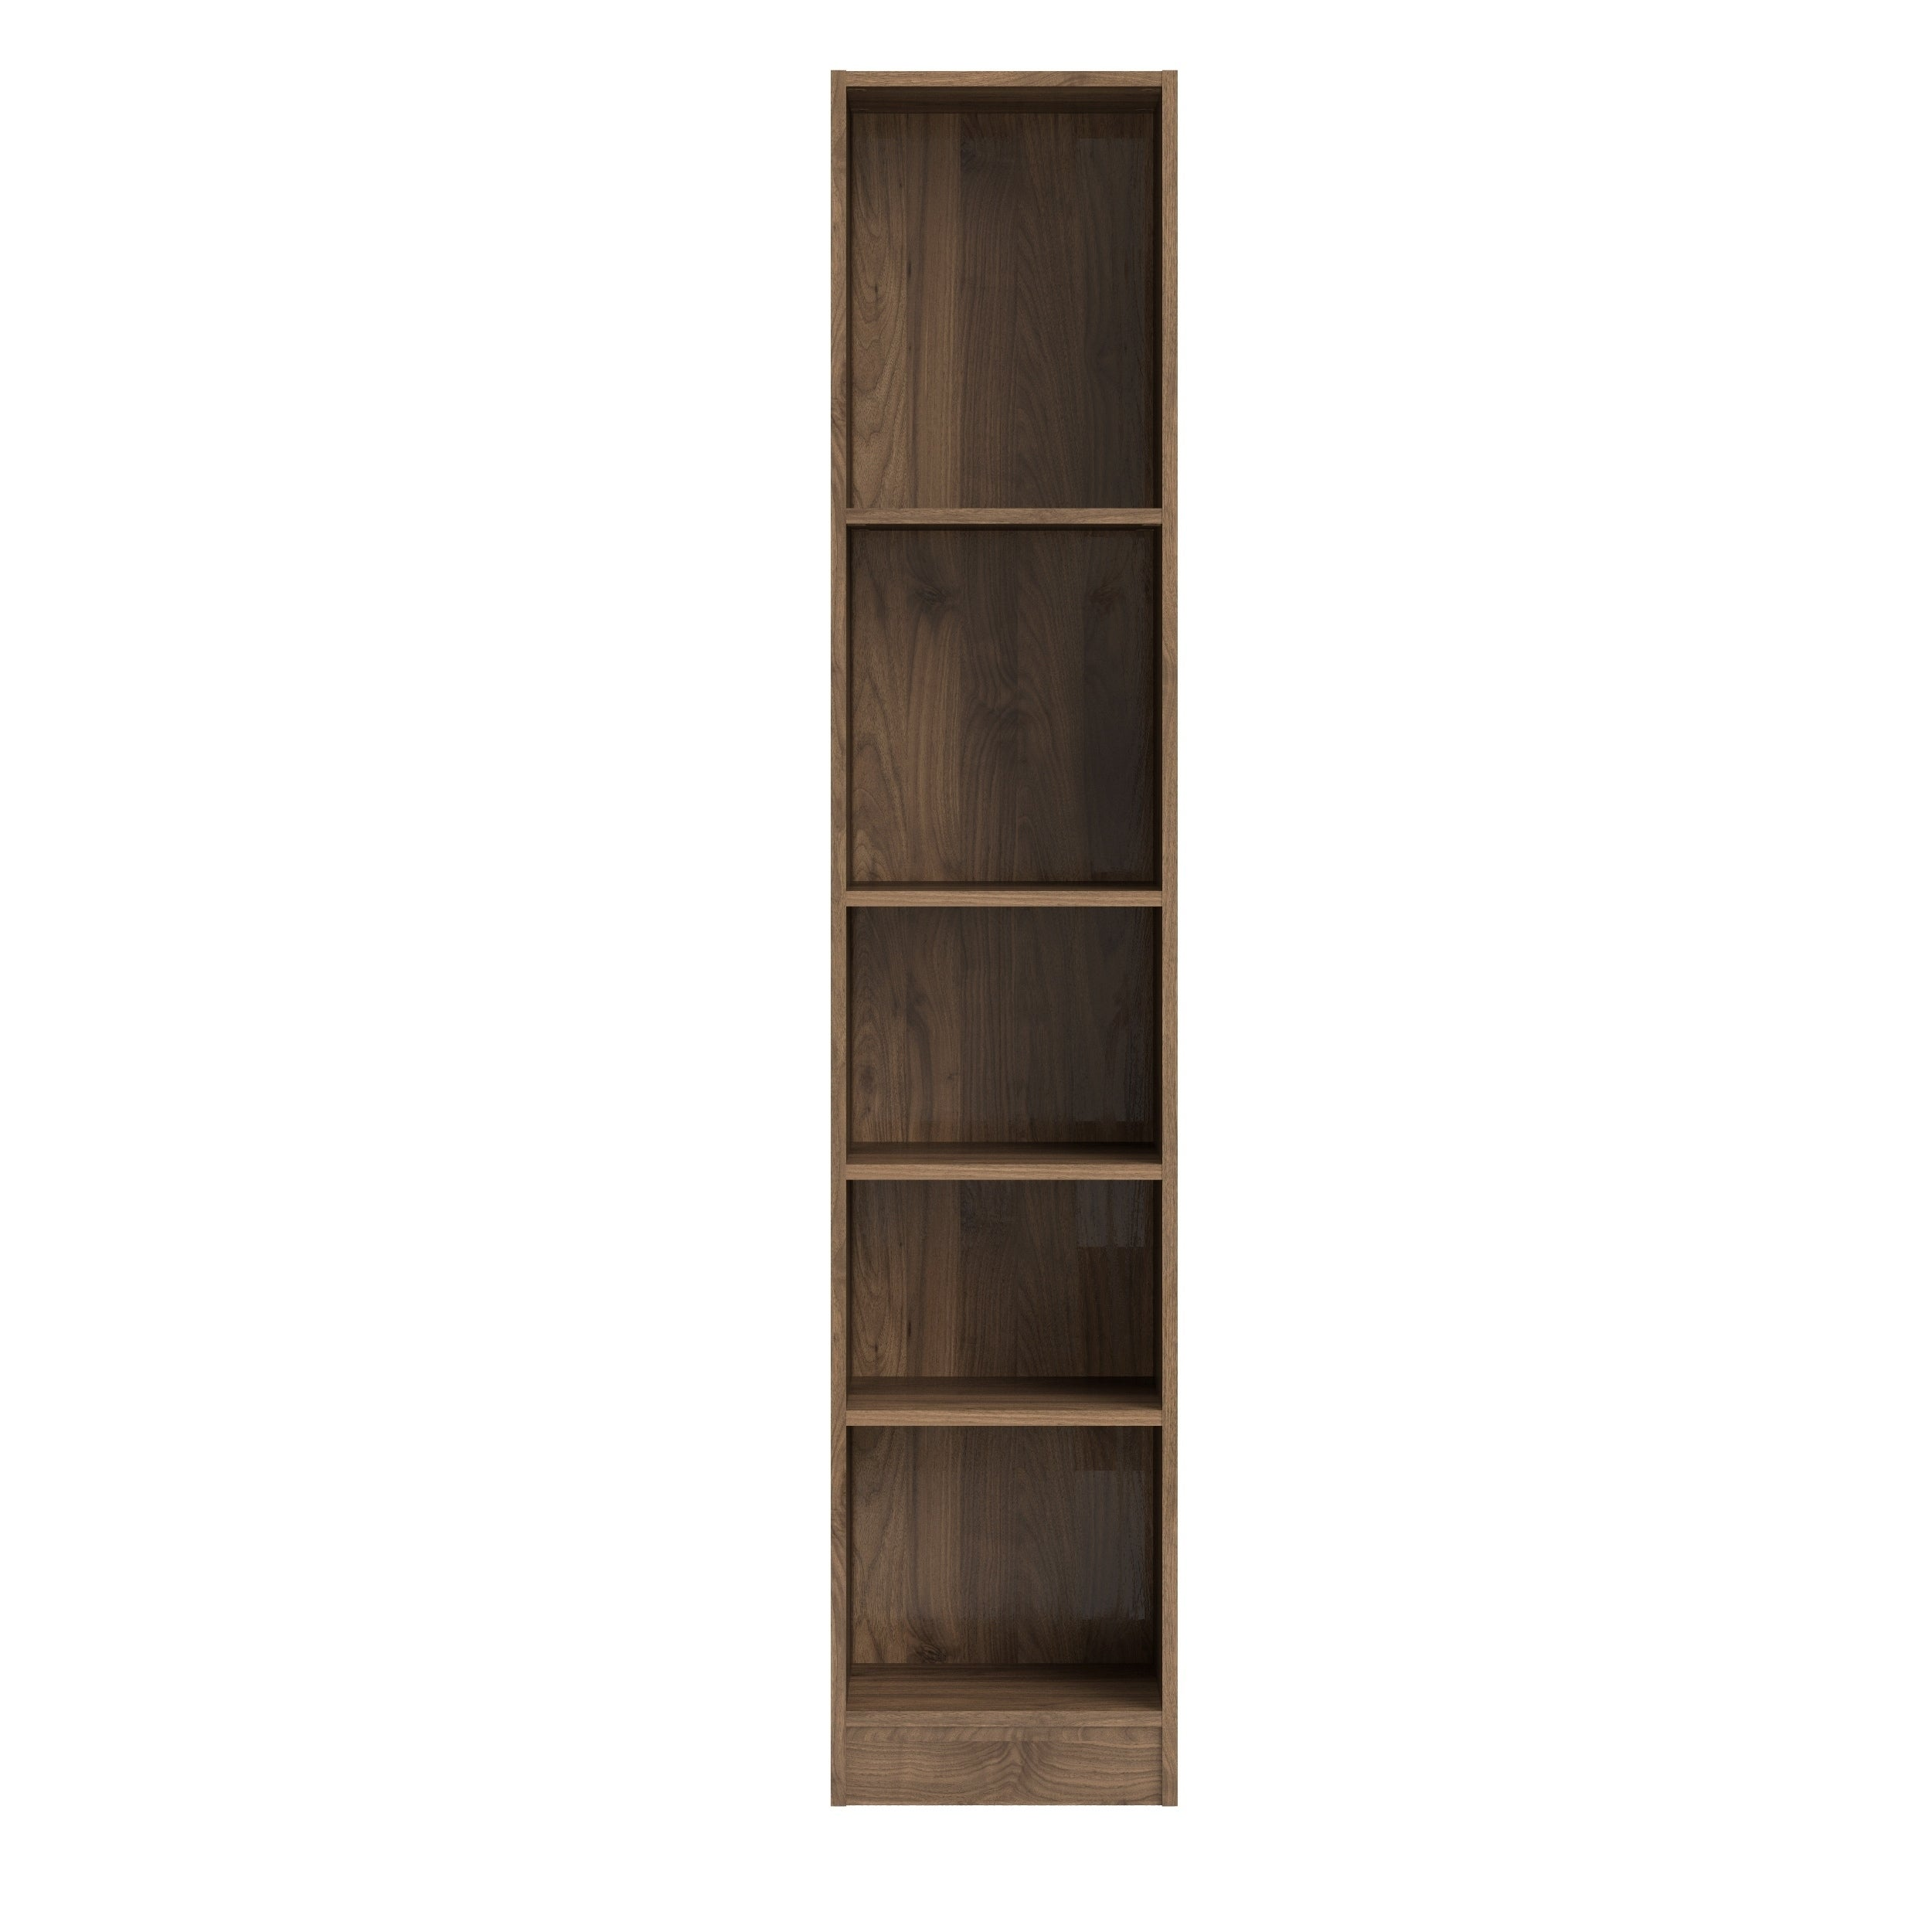 Shop element walnut 5 shelf tall narrow bookcase free shipping today overstock com 25572636